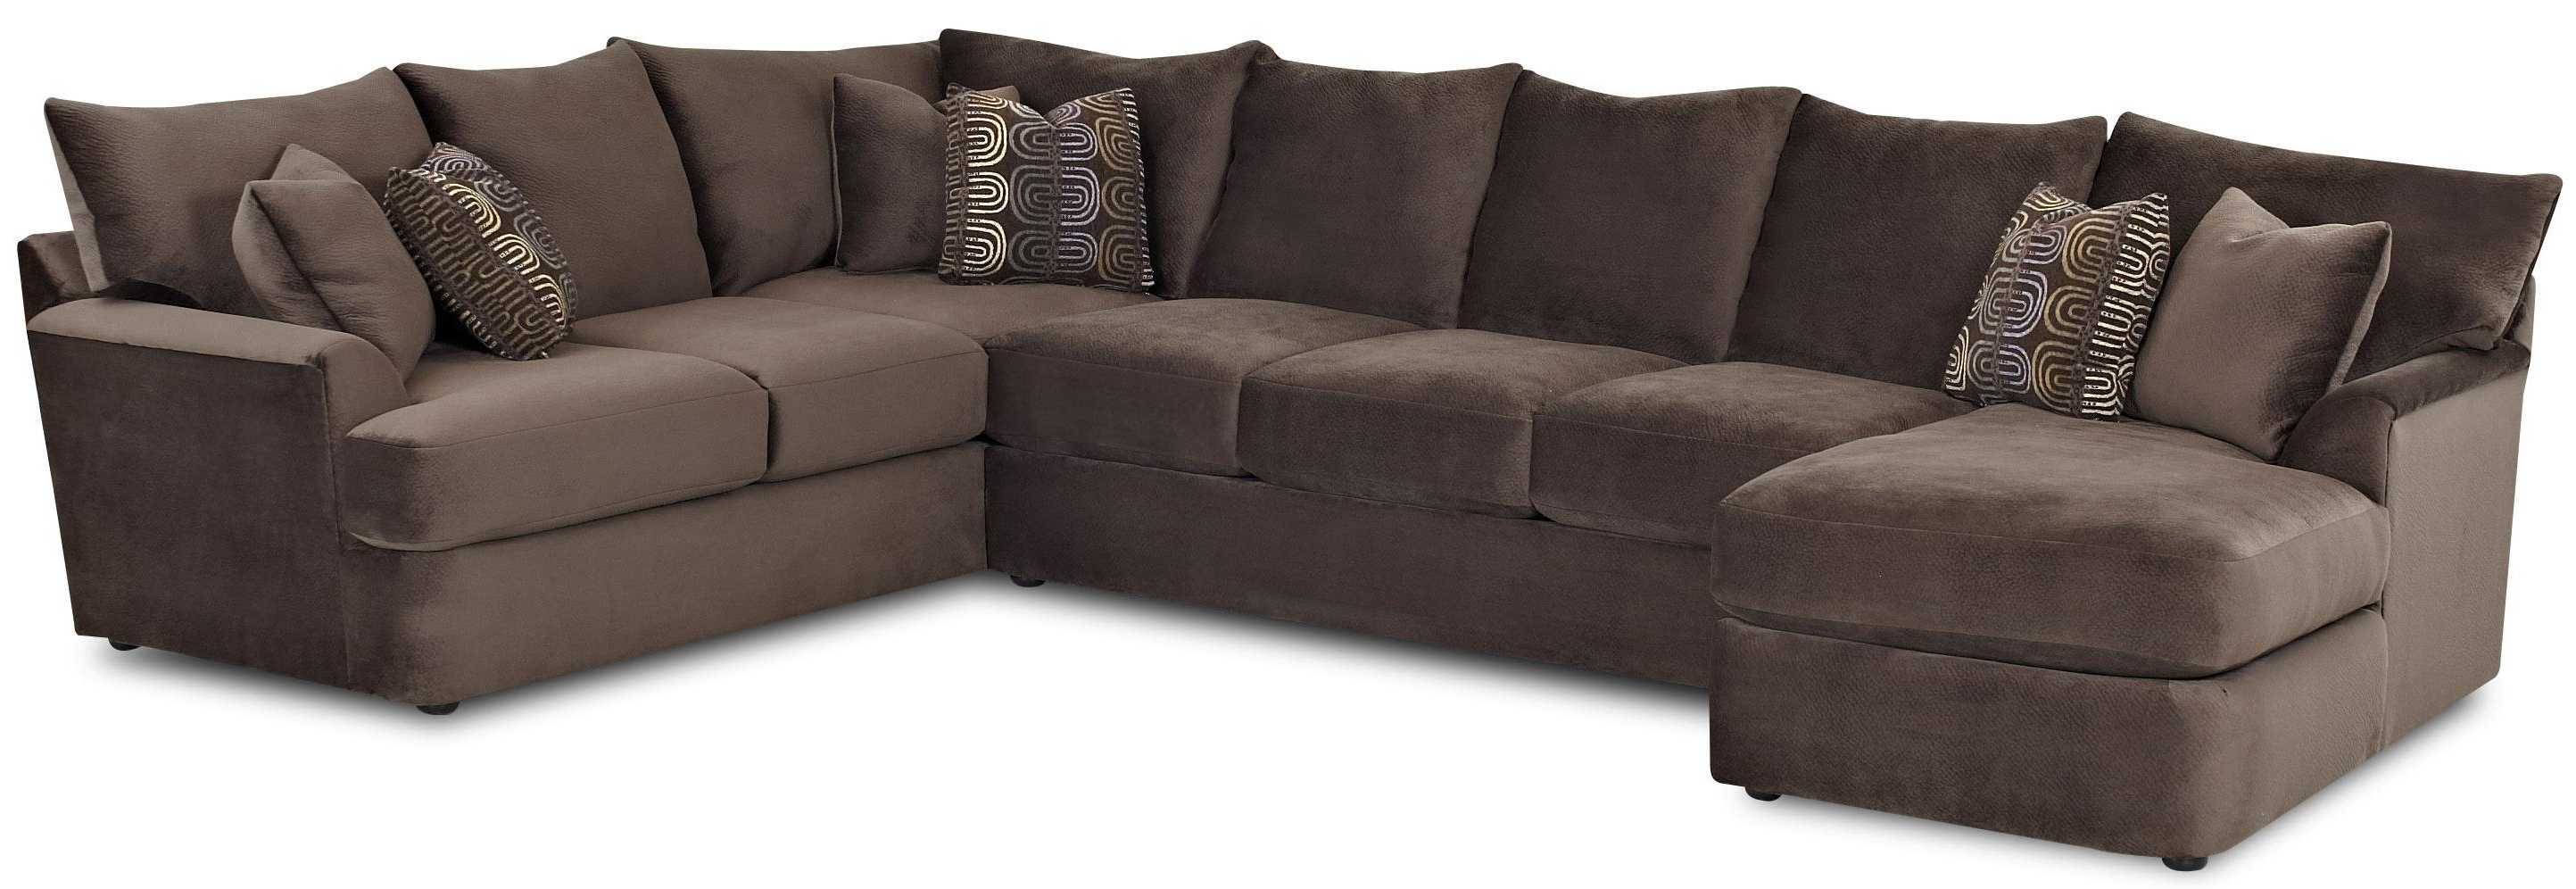 Recent Blue U Shaped Sectionals In Sectional Sofa Design: Best Seller L Shaped Sectional Sofas For (View 13 of 20)